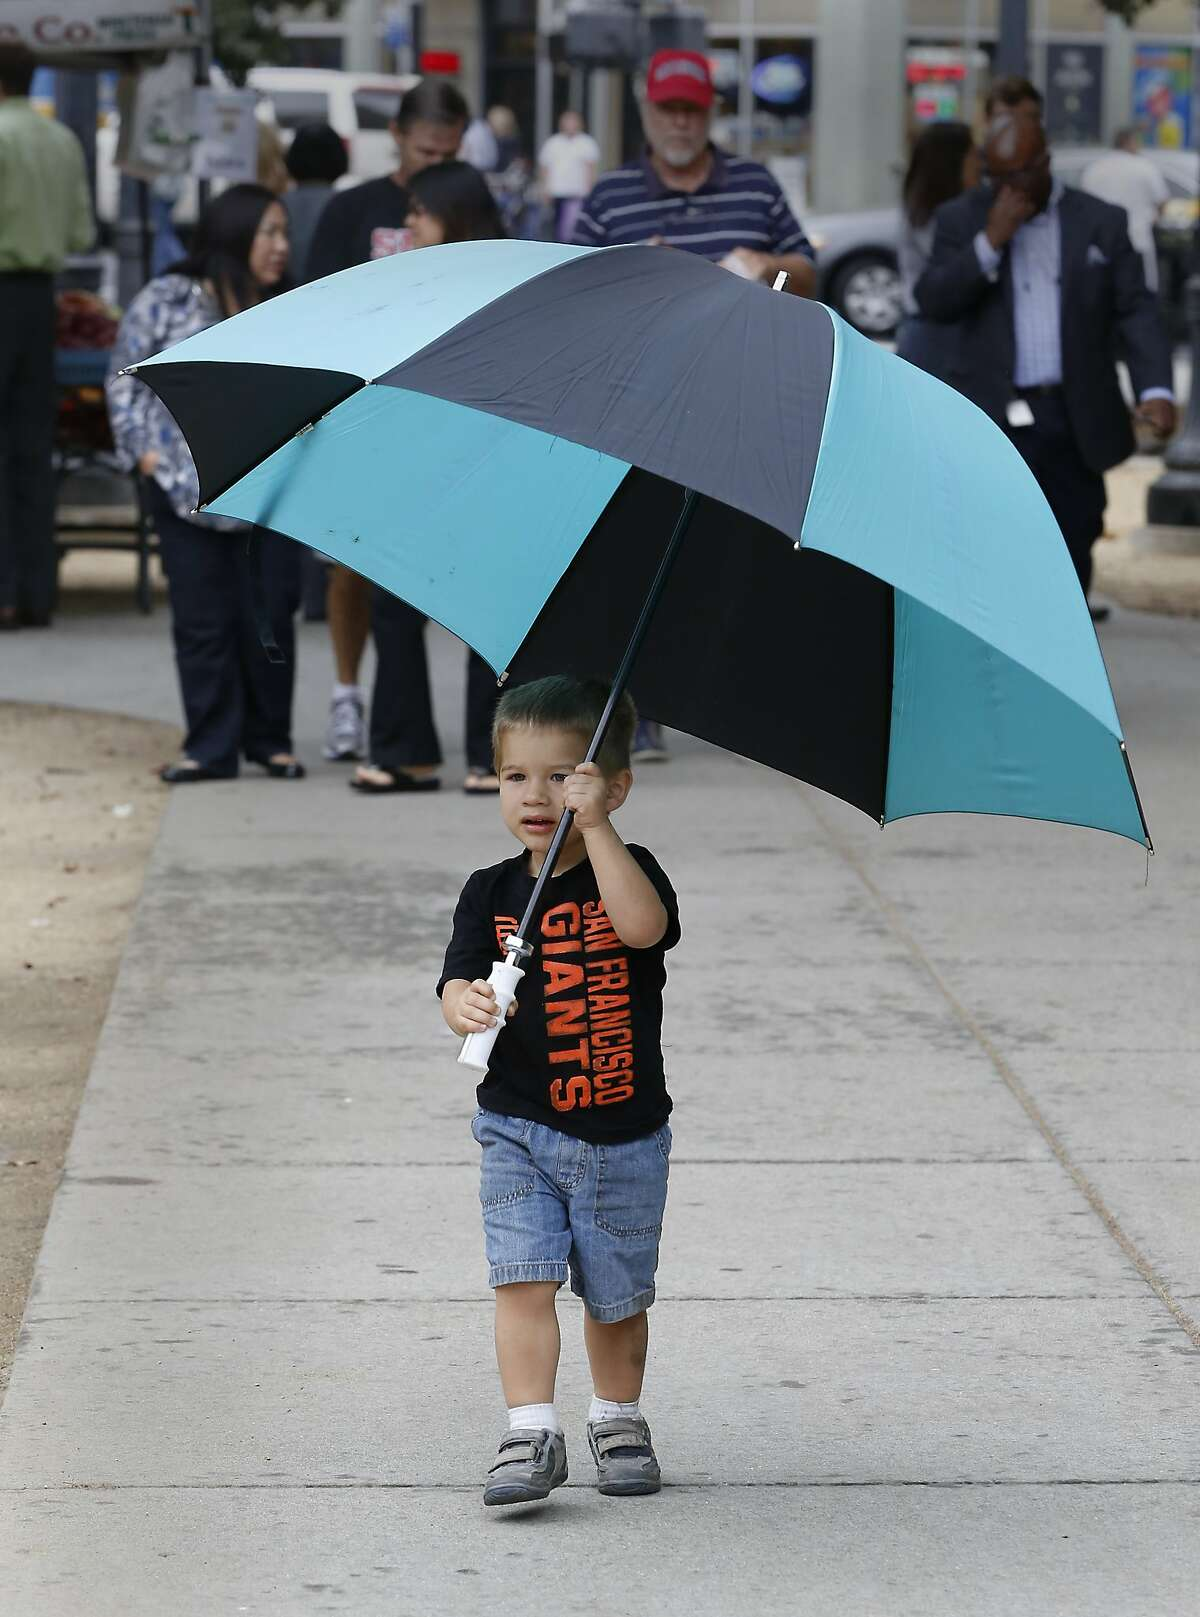 With umbrella in hand Silas Brownsey, 2, came prepared for rain that fell during his visit to a farmers market in downtown Sacramento, Calif., Wednesday, Sept. 30, 2015. The brief rain fall, while welcome, brought little relief from California's four-year-old drought .(AP Photo/Rich Pedroncelli)